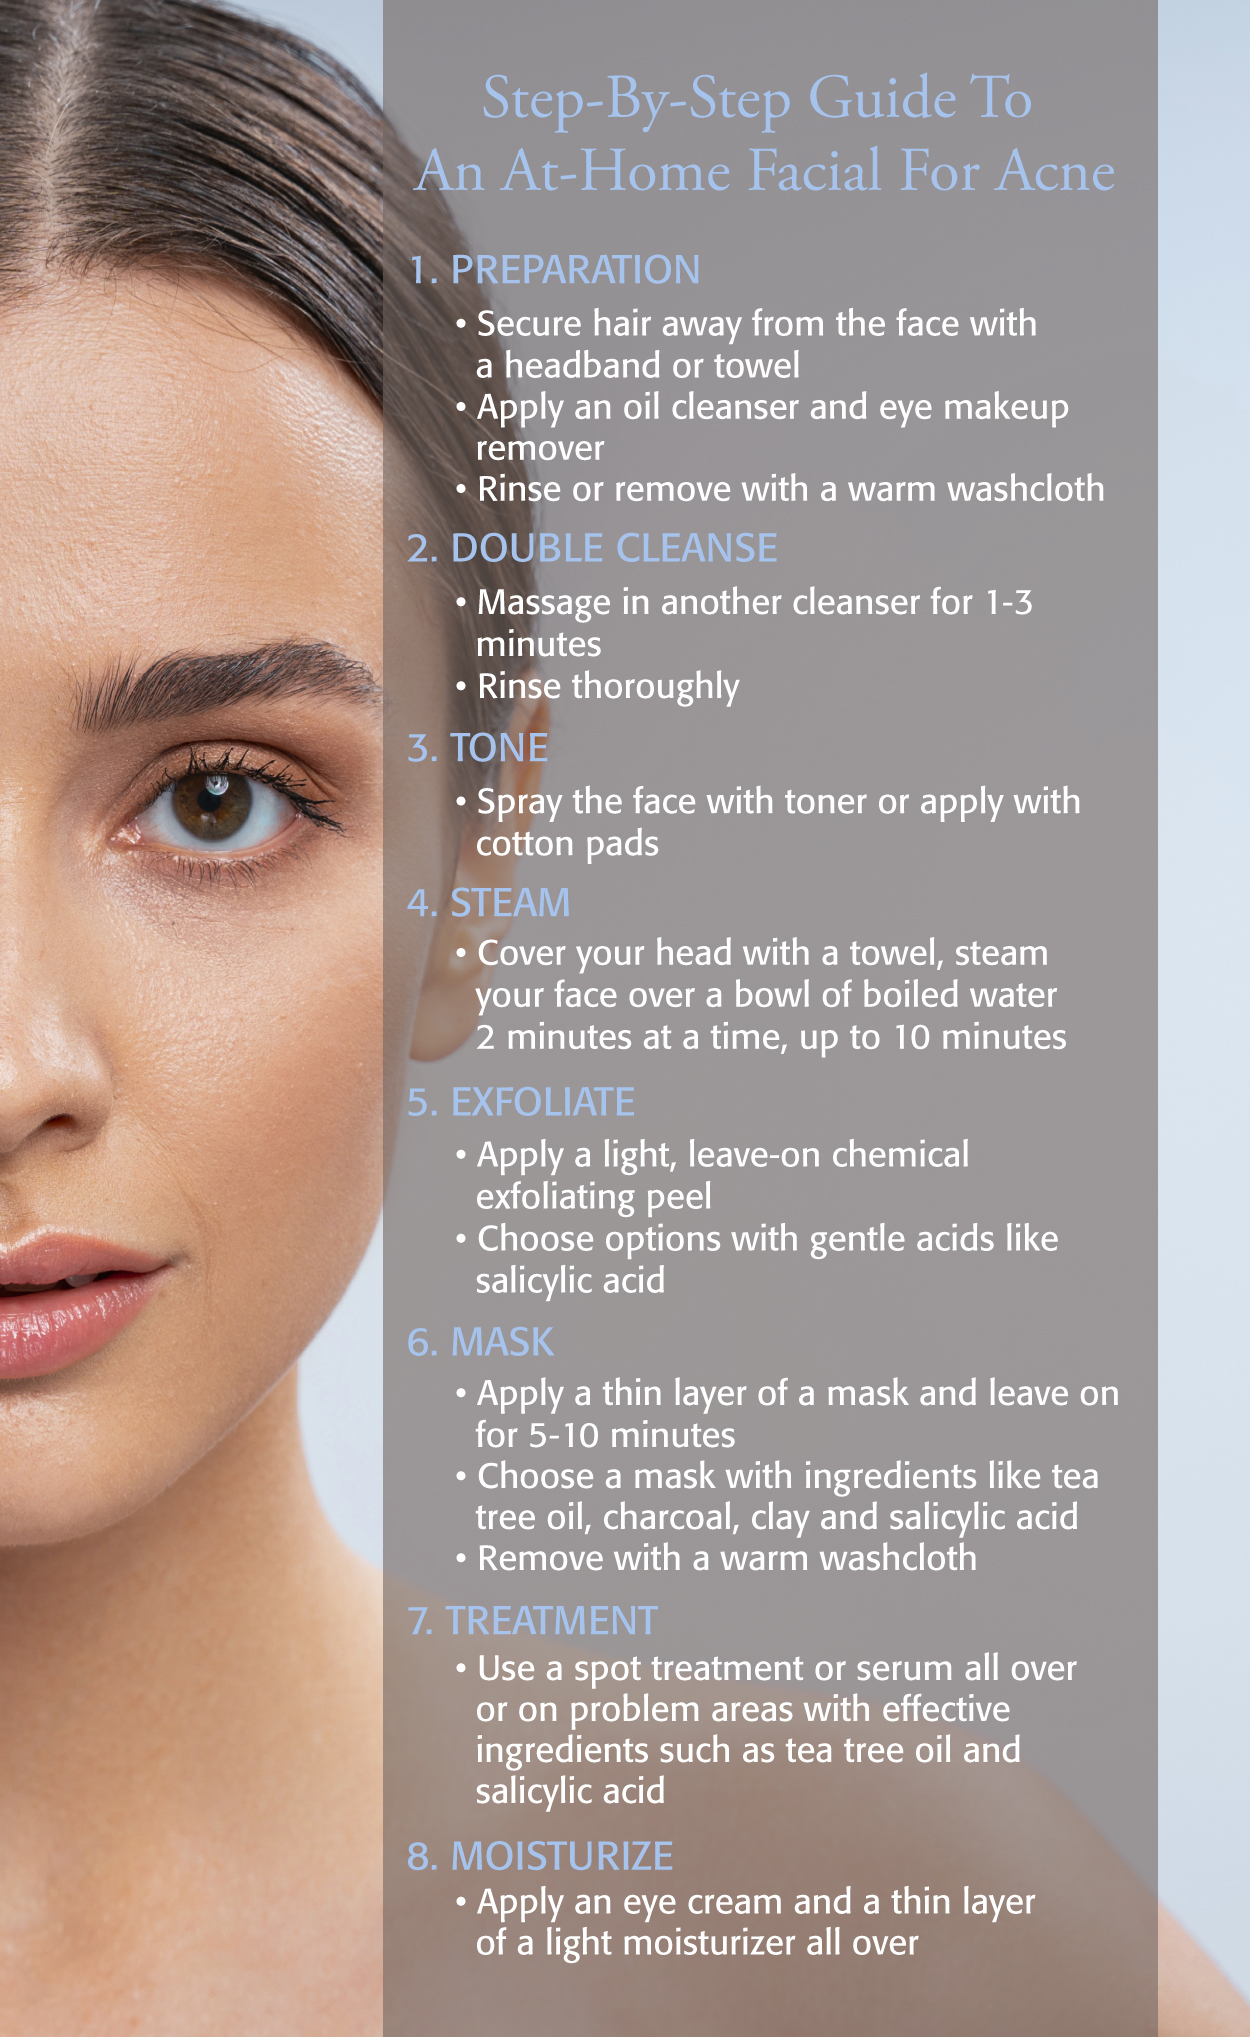 Eminence Organics Facial At Home For Acne Infographic